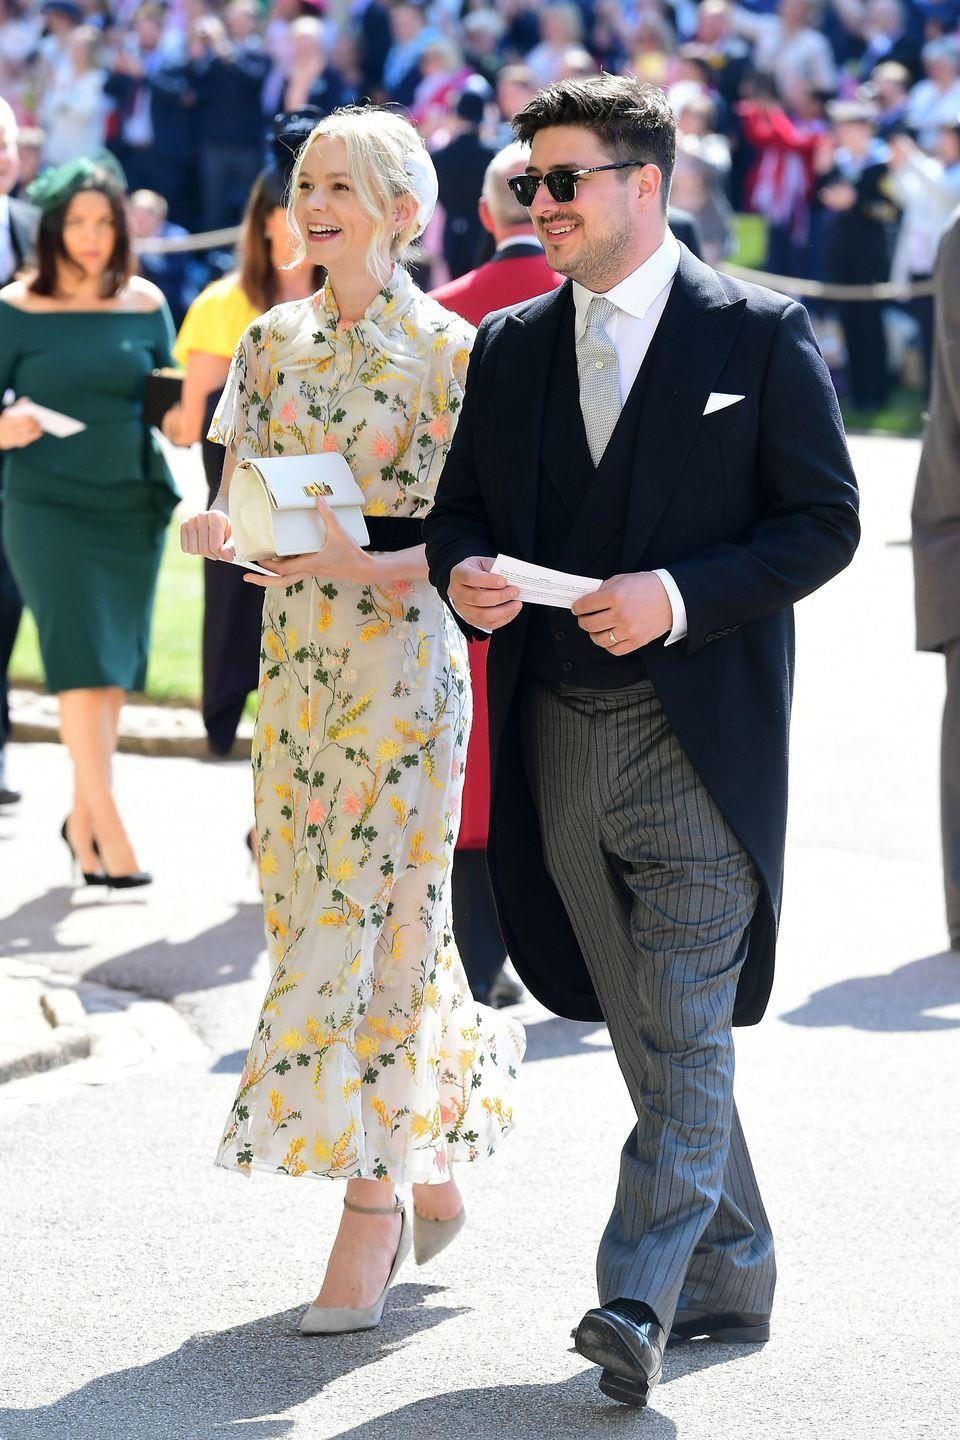 <p>Carey Mulligan looked ethereal in her suitably British floaty floral tea dress by designer Erdem for Harry and Meghan's special day. </p>